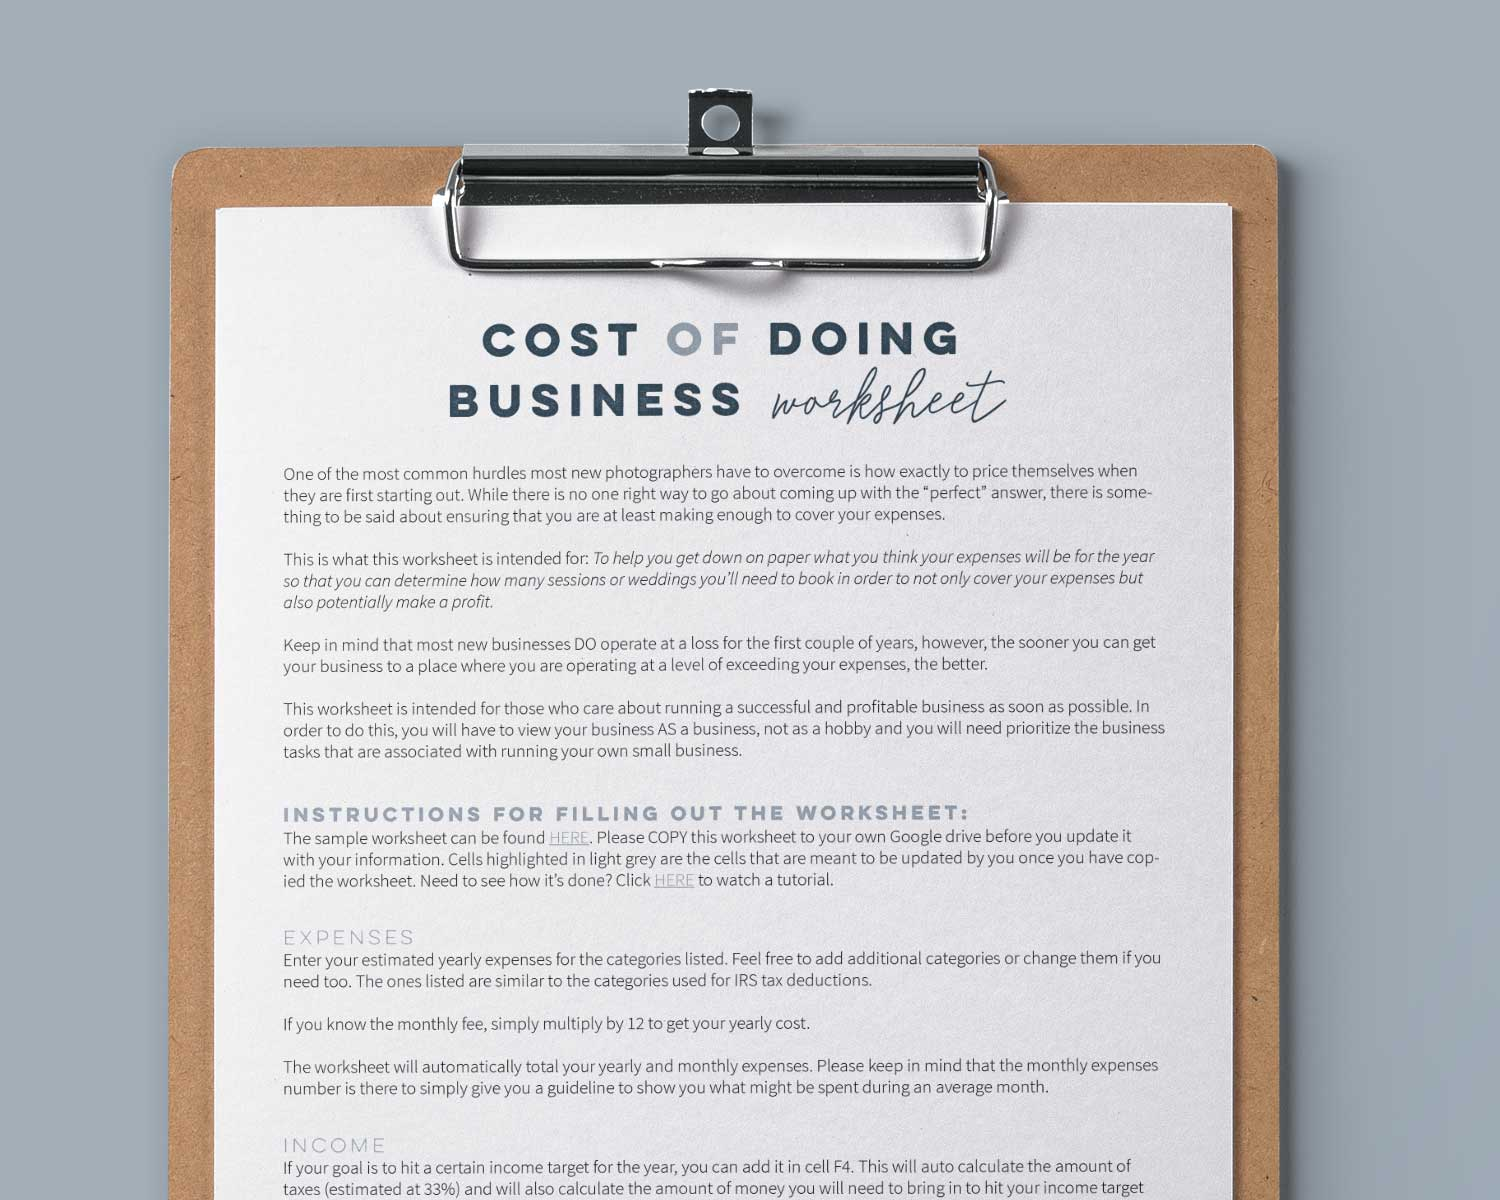 Cost-of-Doing-Business-Mockup.jpg